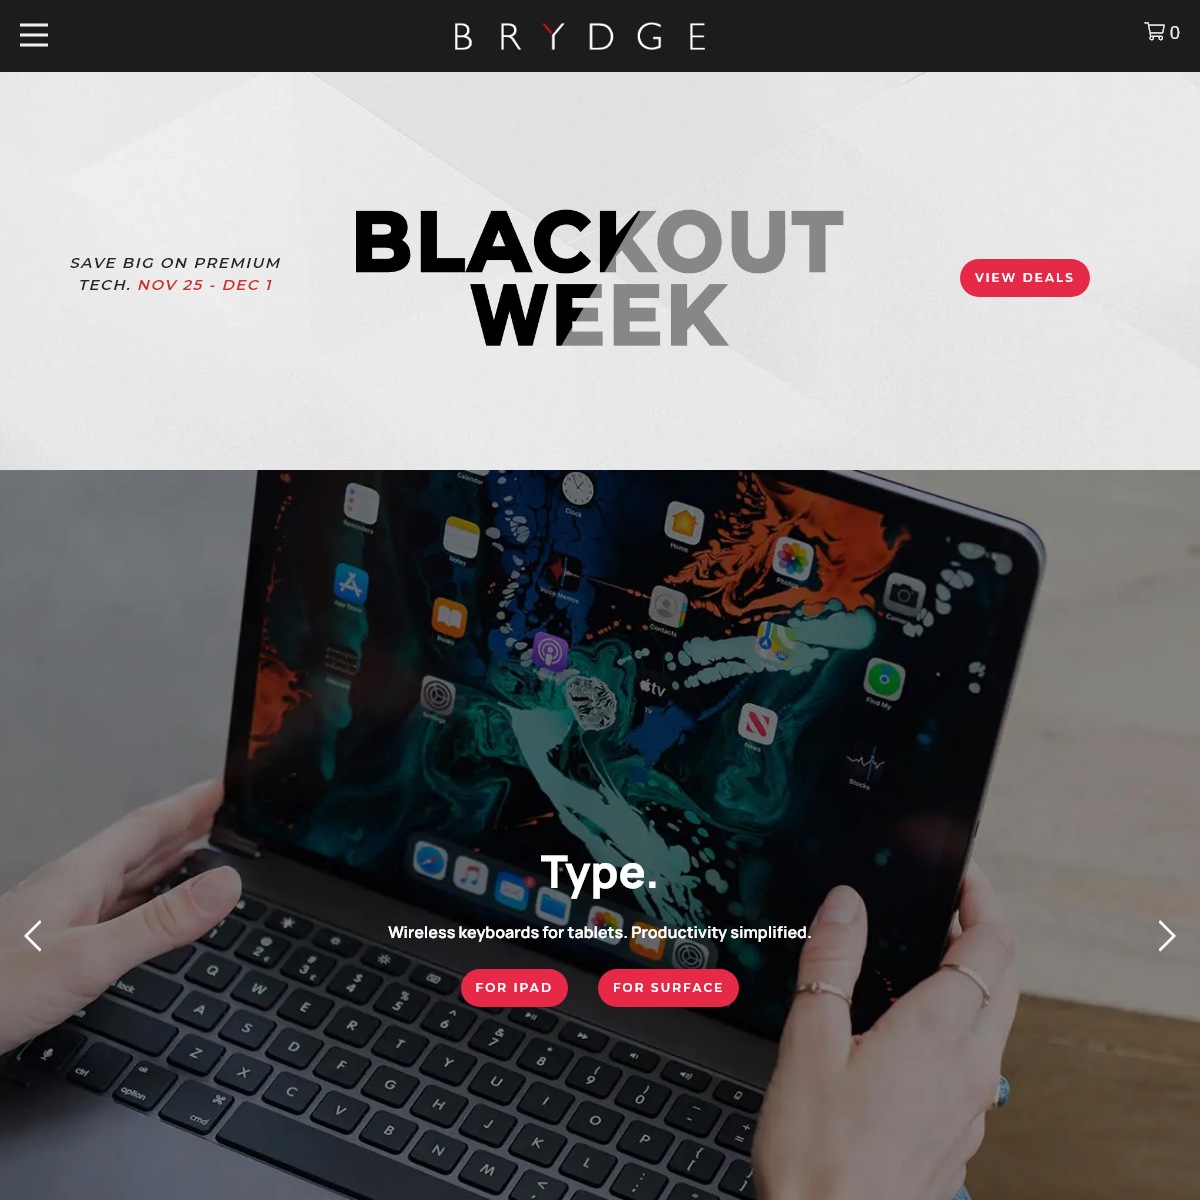 Brydge - Award Winning Wireless Keyboards